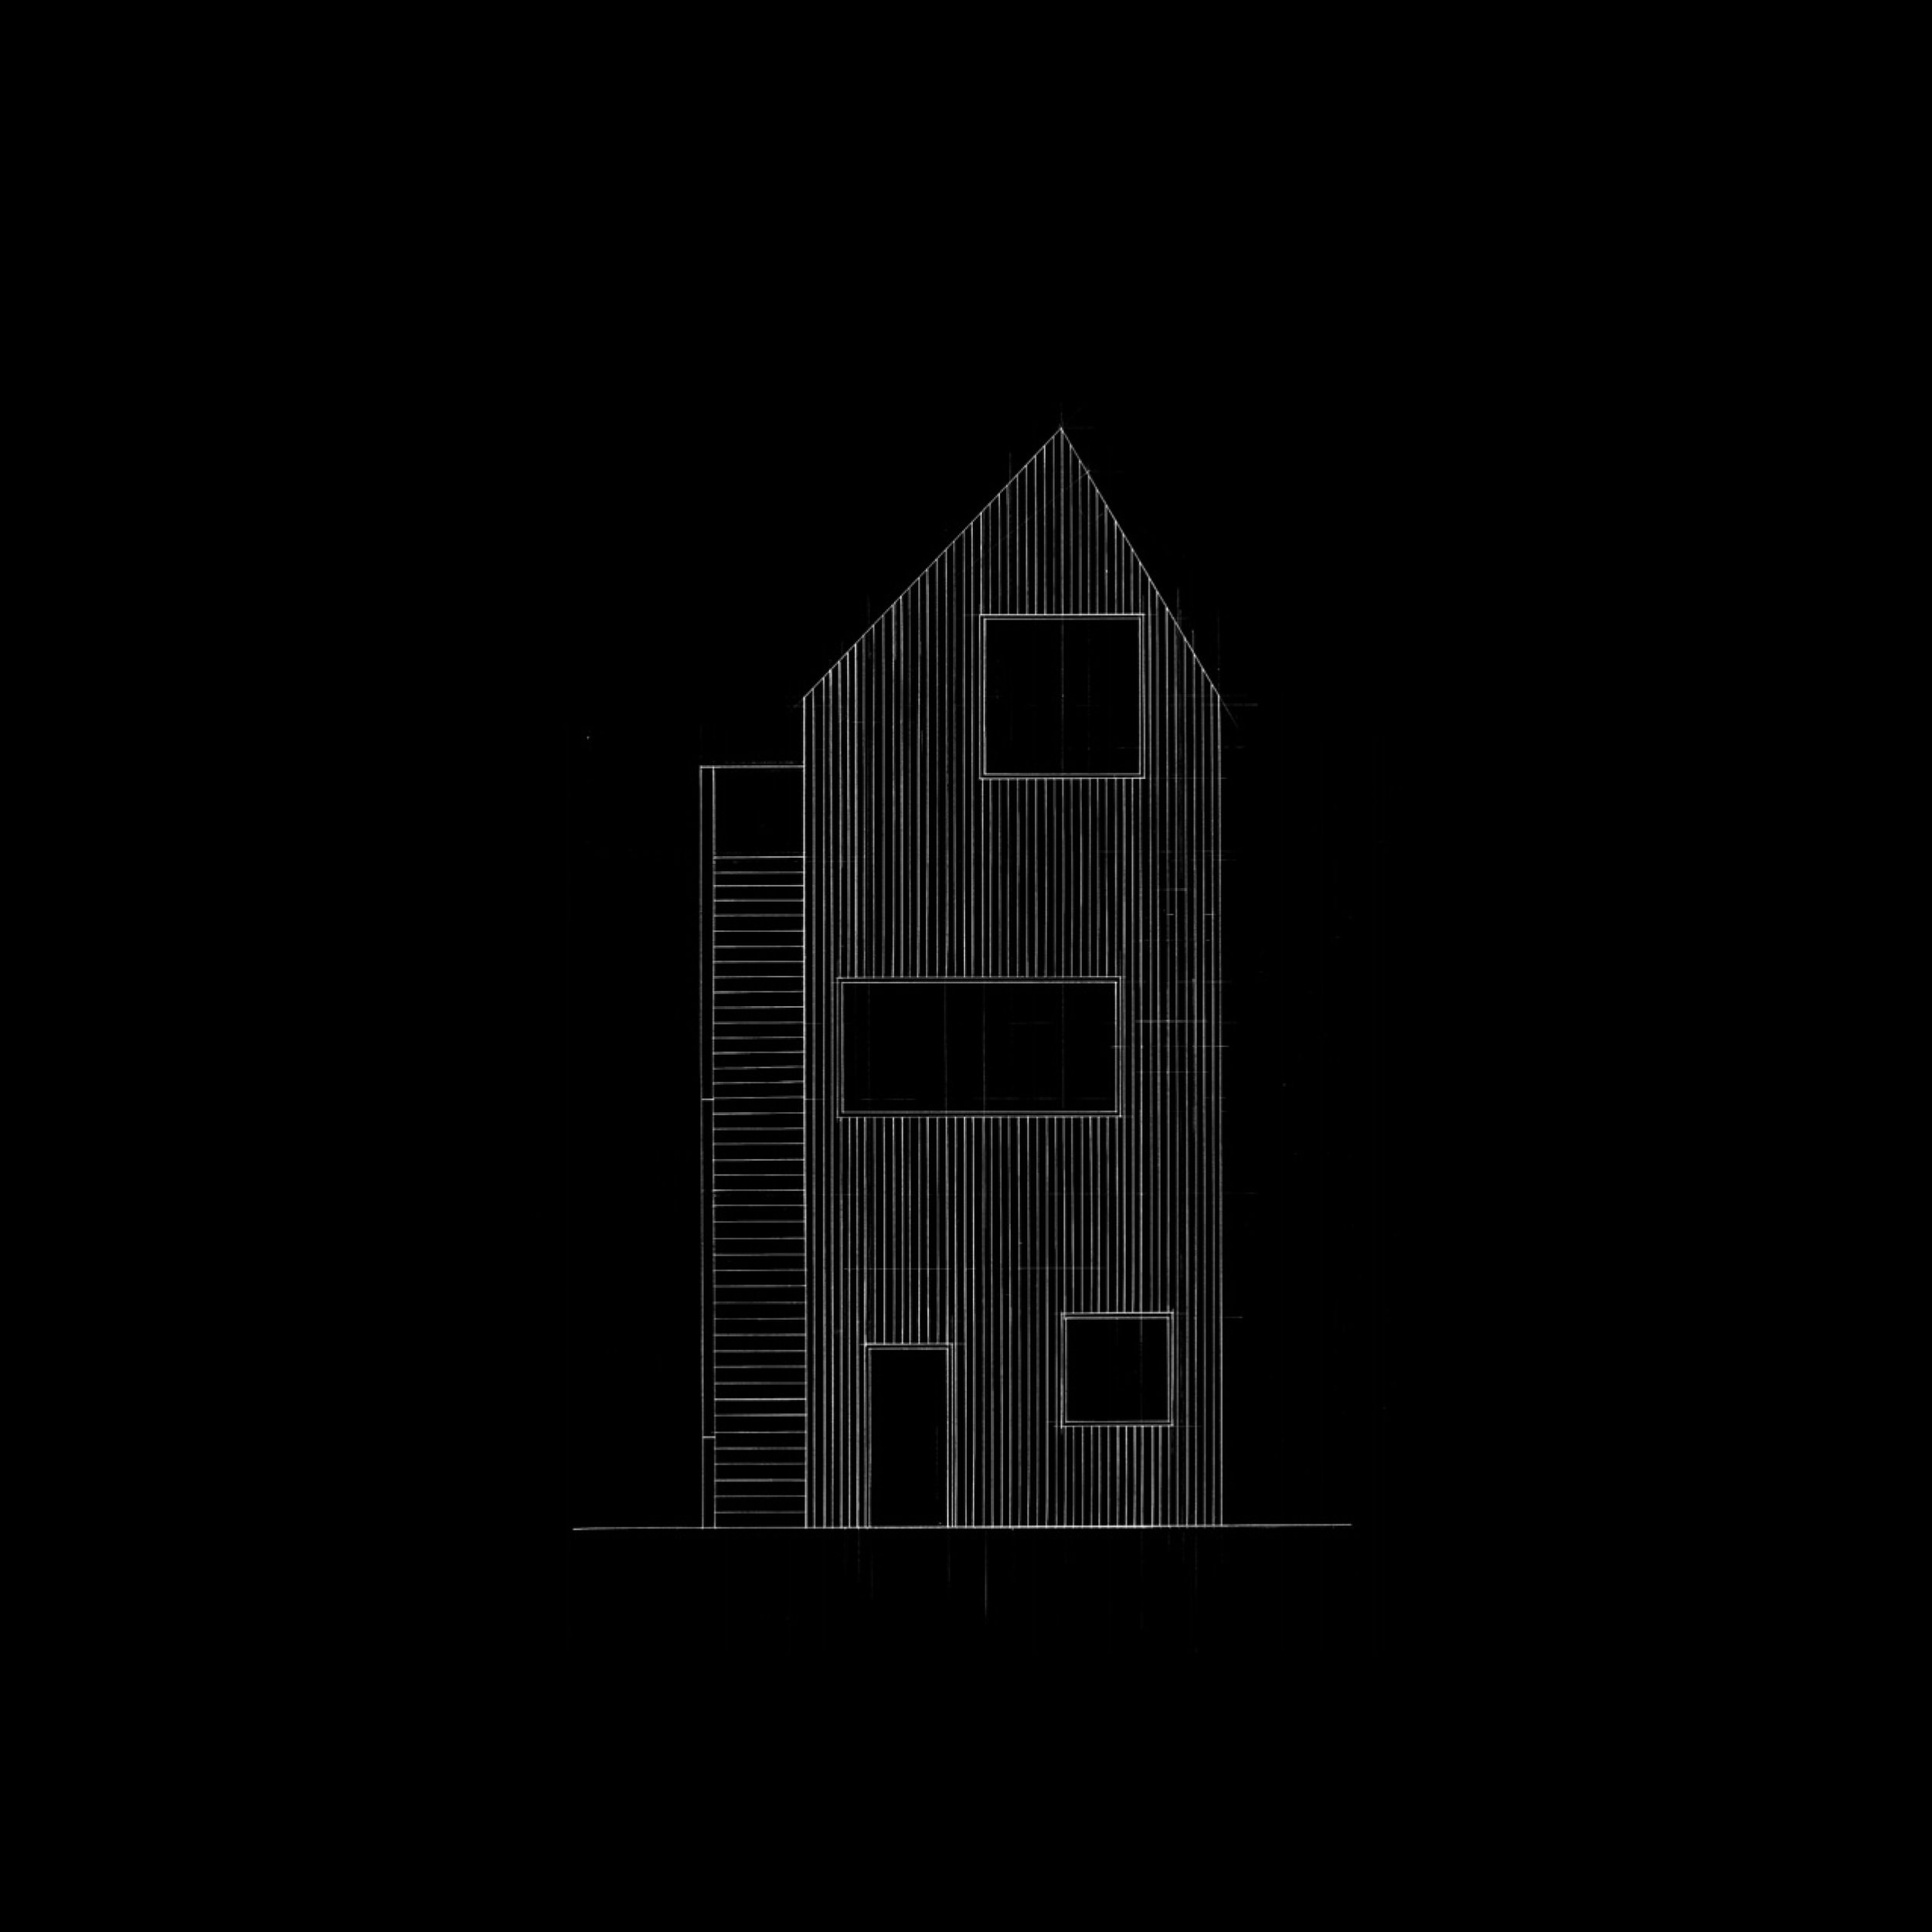 Tilted House II Square Web 2 Invert.jpg